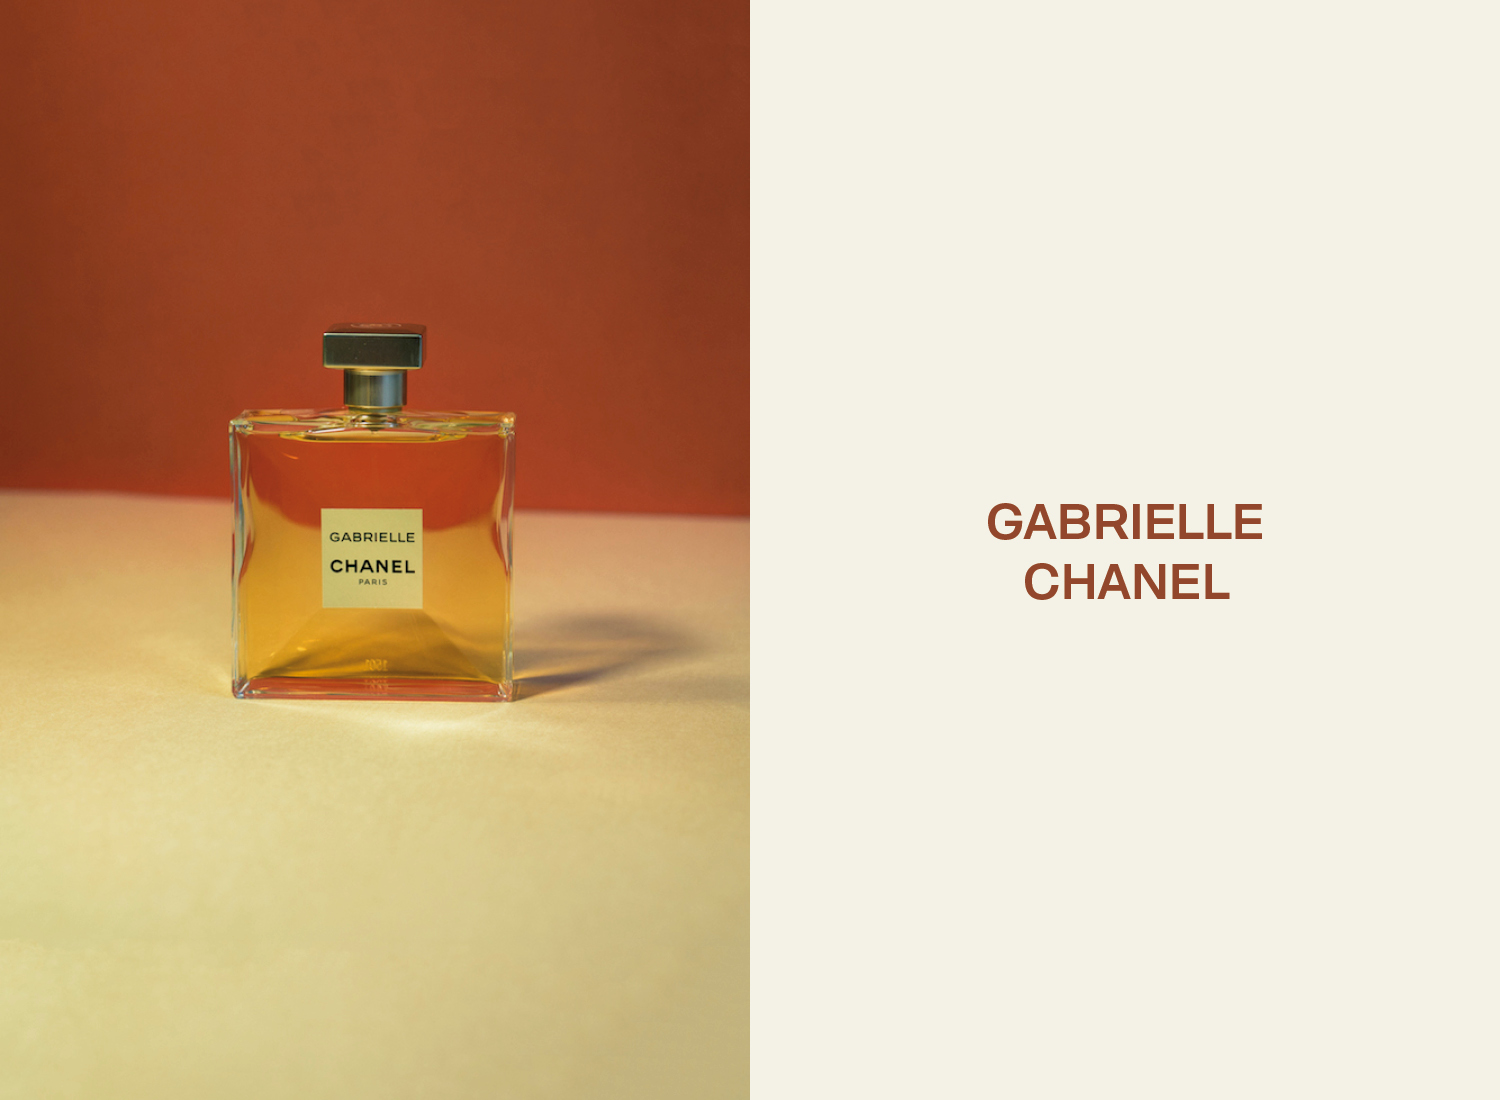 Perfume Story: Gabrielle Chanel